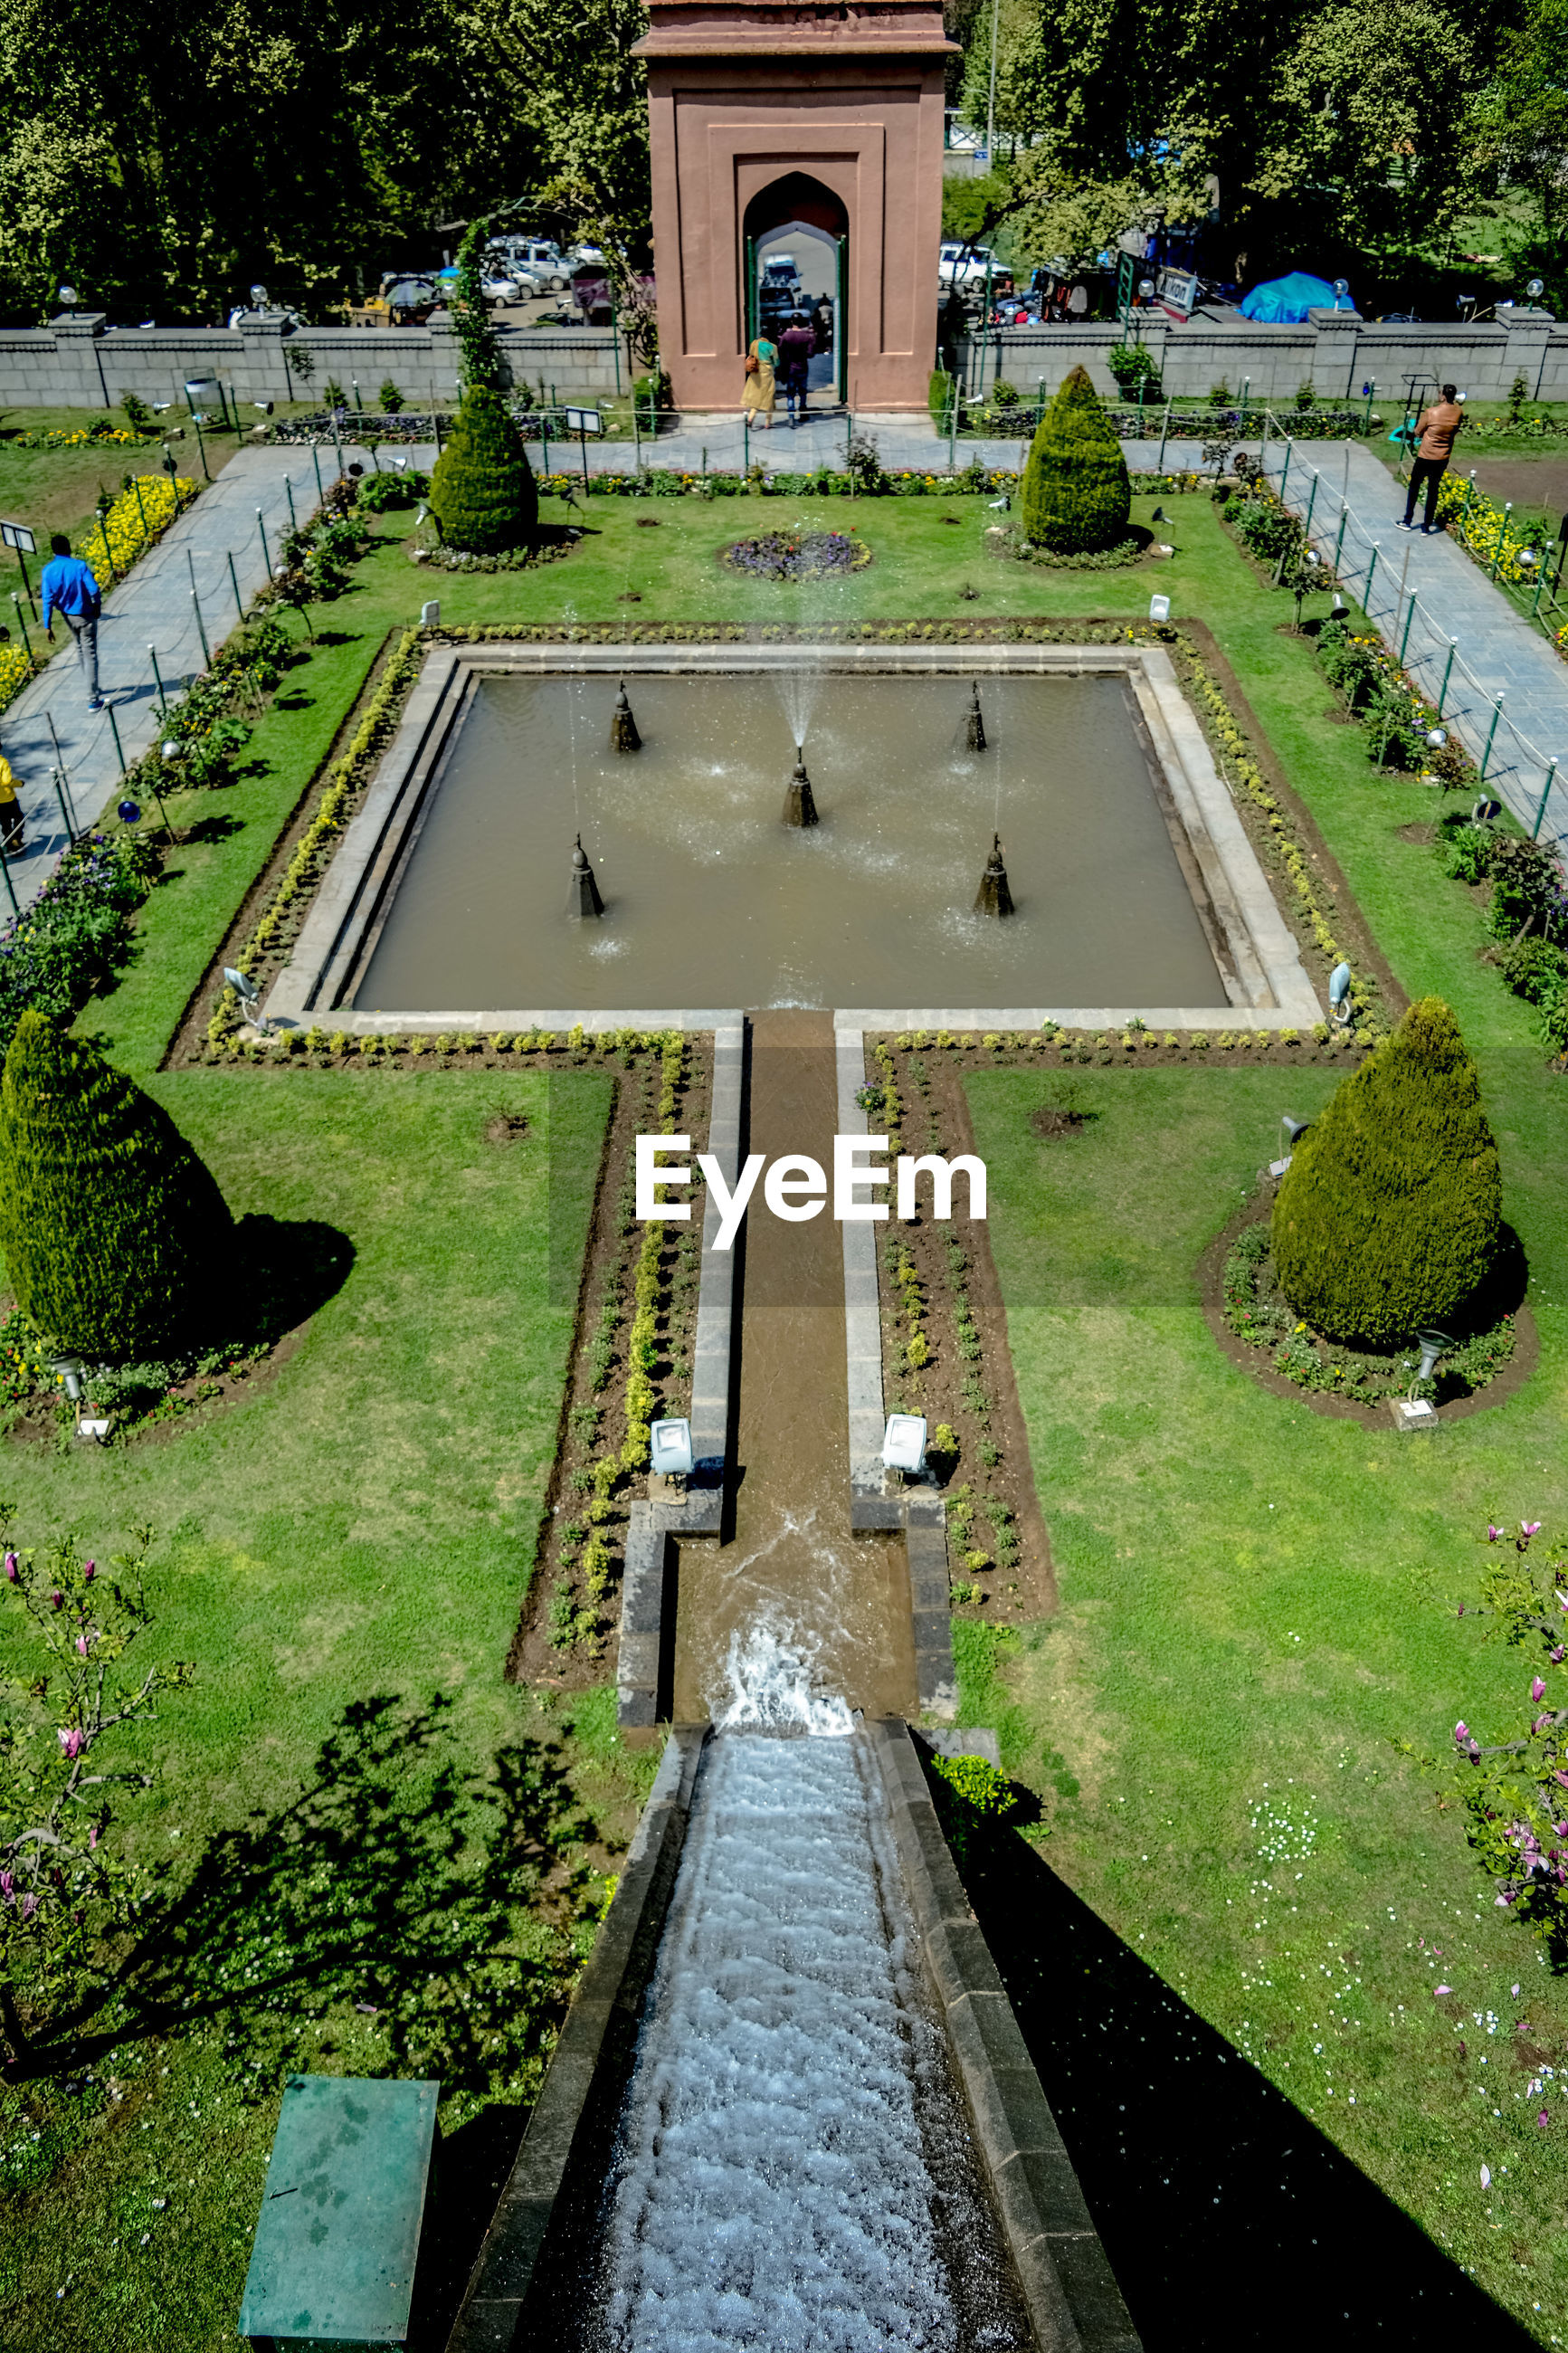 HIGH ANGLE VIEW OF FOUNTAIN IN PARK